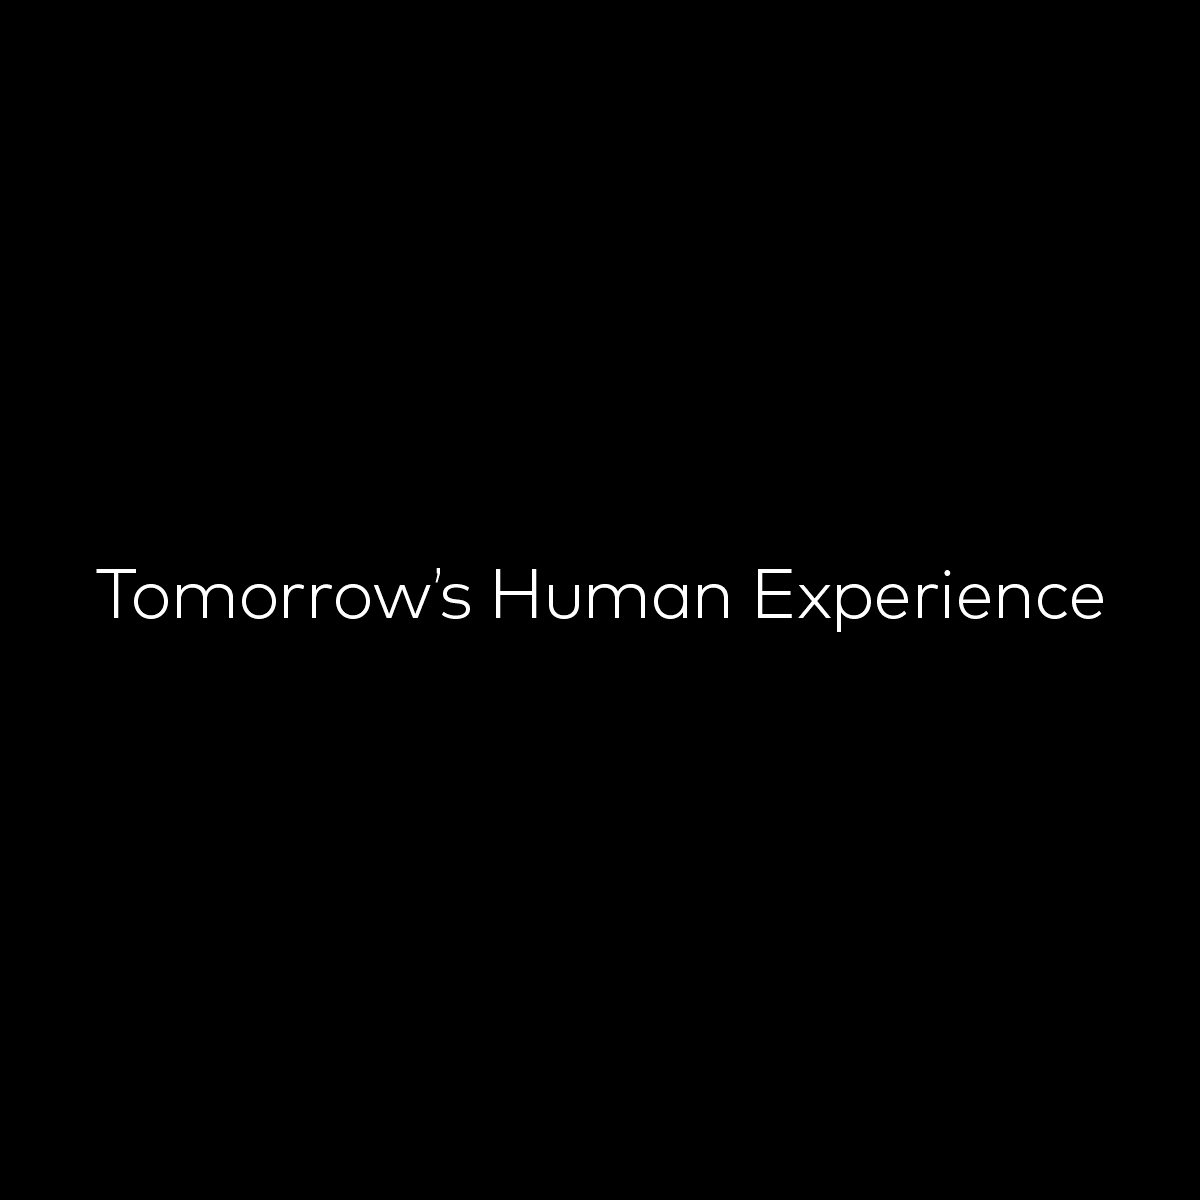 Tomorrow's Human Experience - Experiences That Matter